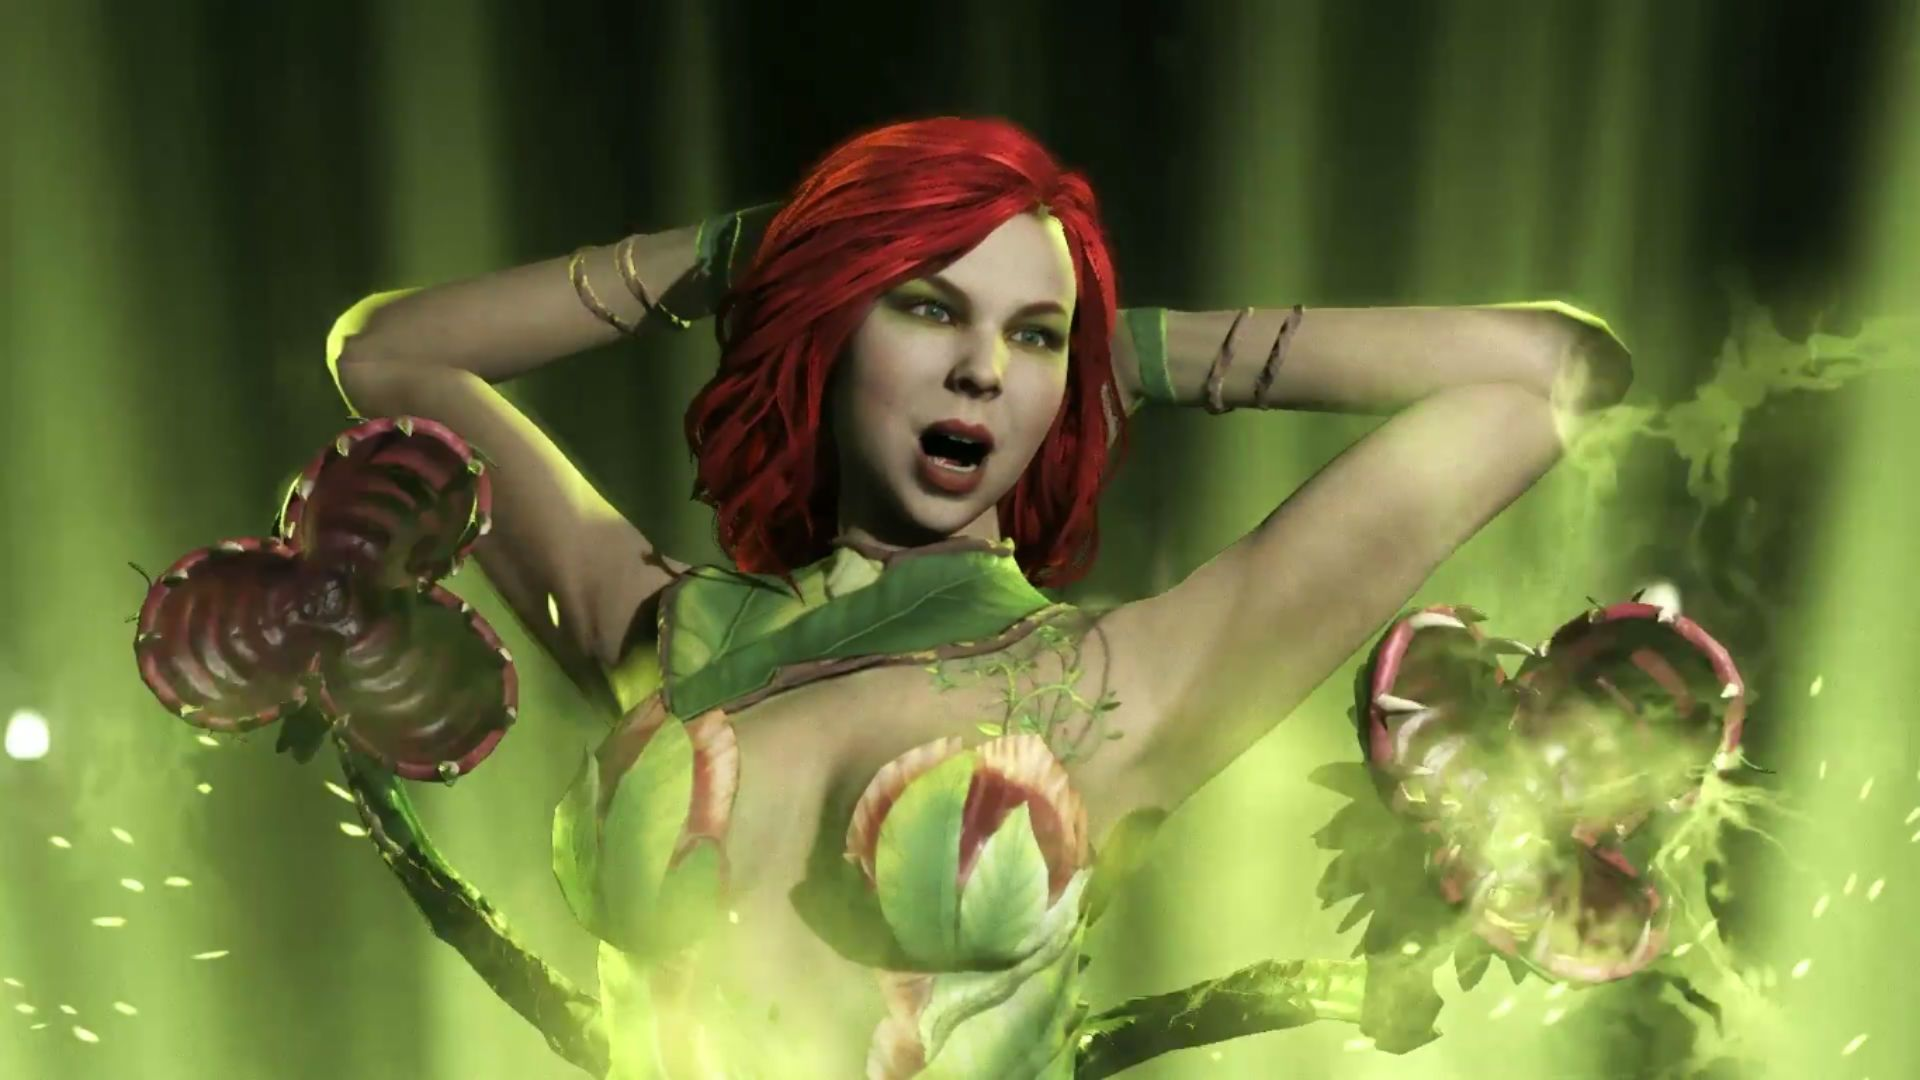 Poison Ivy Knows That She S Toxic In Her Full Injustice 2 Gameplay Trailer One Of The Characters I M Sure Most Folks Were Exc Poison Ivy Injustice 2 Injustice